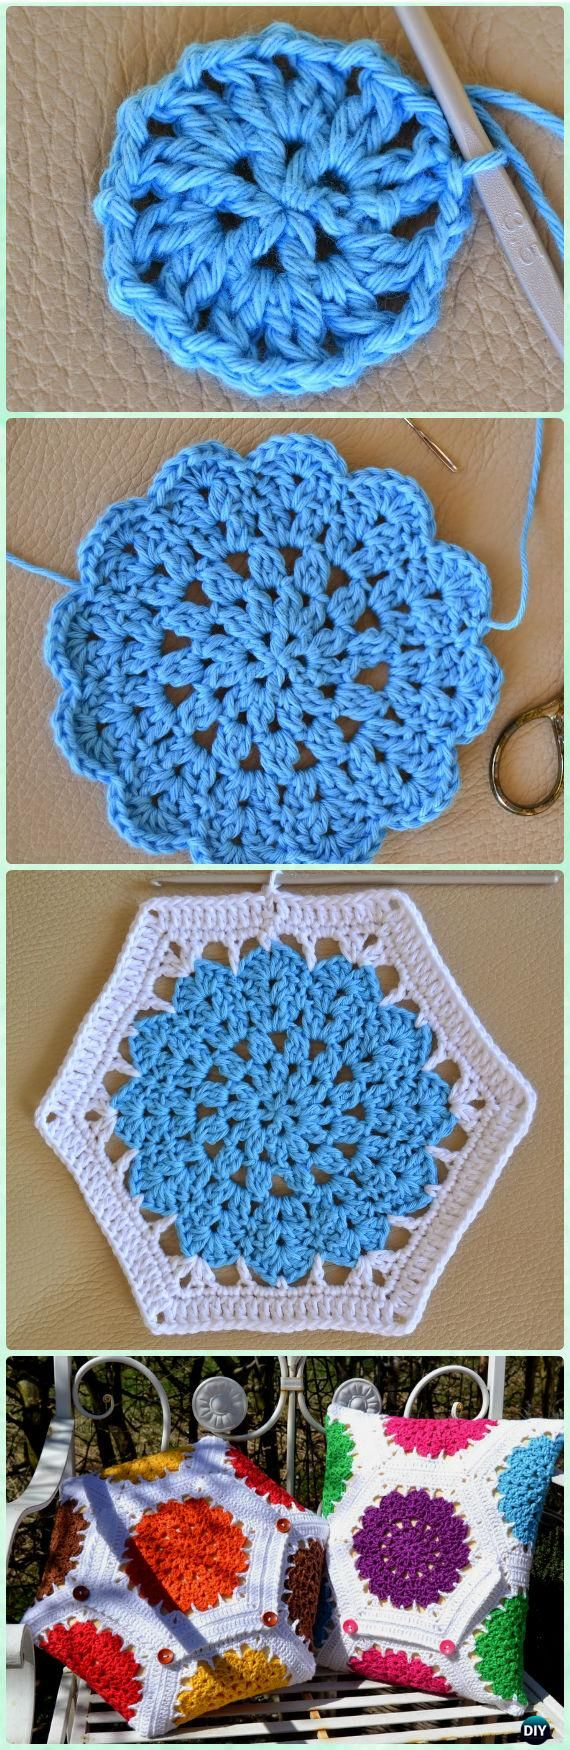 Crochet Mandala Flower Hexagon Motif Free Pattern - Crochet Hexagon Motif Free Patterns